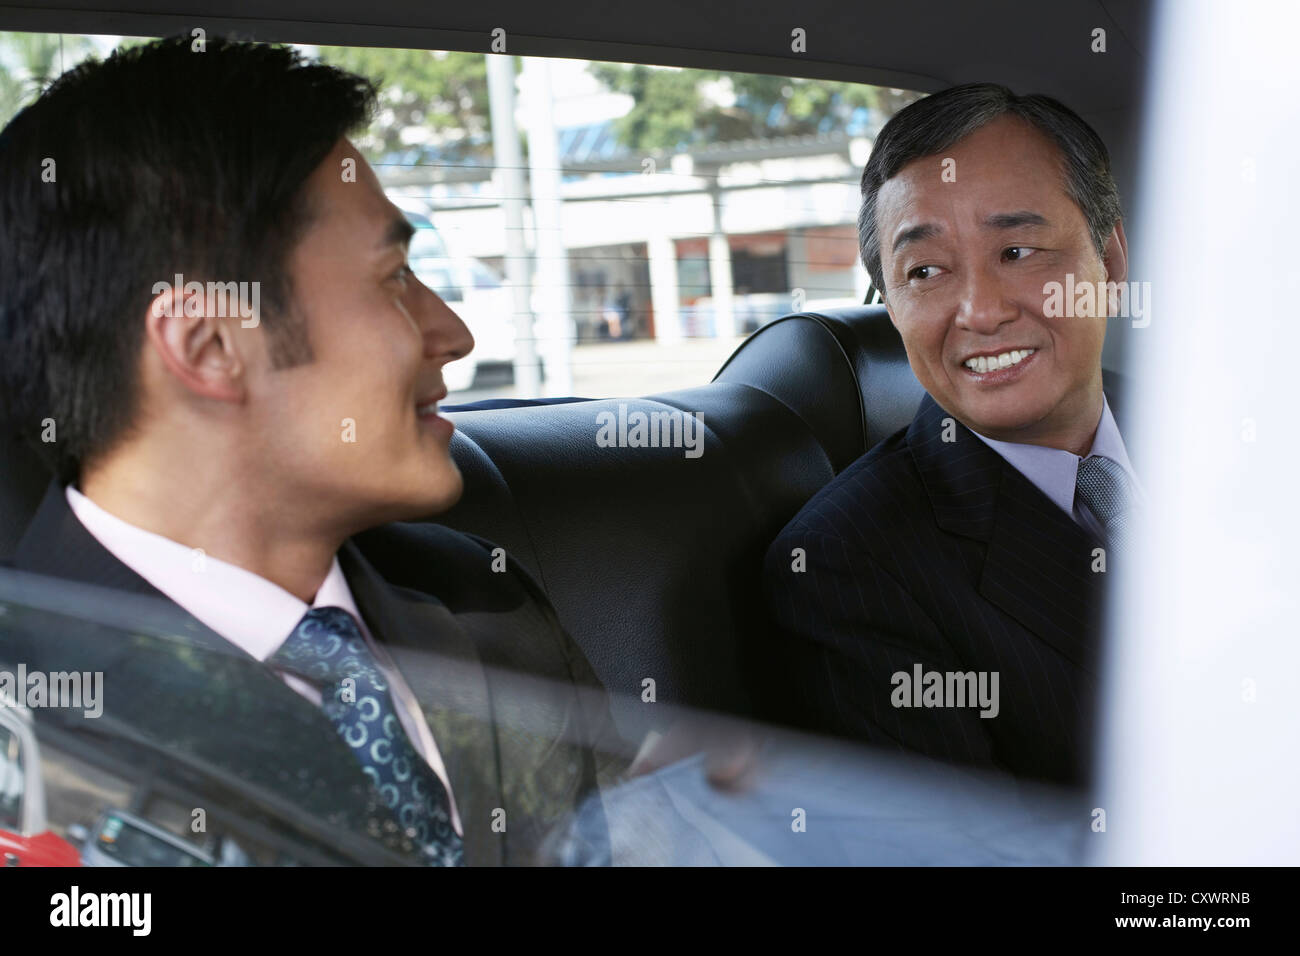 Businessmen riding together in taxi - Stock Image